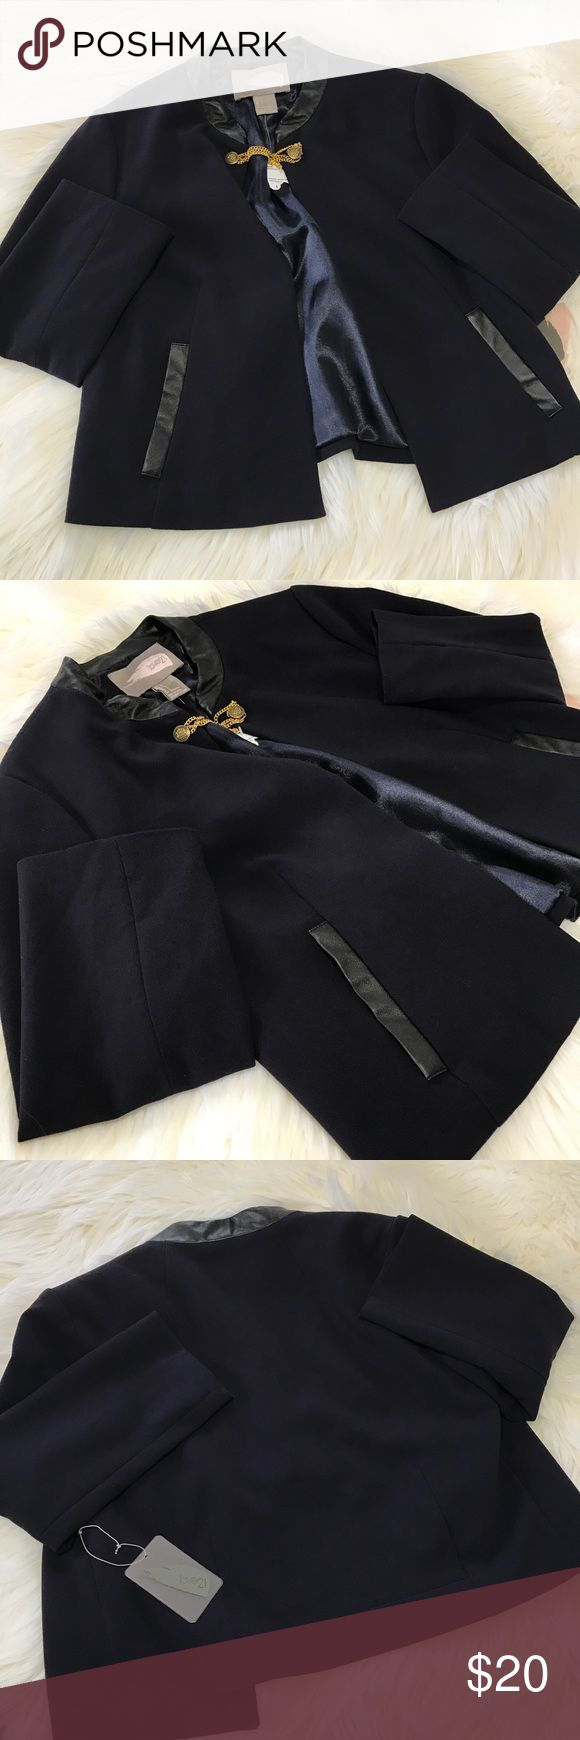 """Forever 21 Navy Career Jacket Blazer Size L NWT NWT Forever 21 career jacket blazer in a size large. Color is Navy with a black collar and black pockets. Jacket only fastens by the chain/button by the collar (see photos). There are no snags, stains, or rips. Measurements are approximately while lying flat: 18"""" long, 17"""" from armpit to armpit, 18"""" sleeve length. Feel free to ask questions! Forever 21 Jackets & Coats Blazers"""